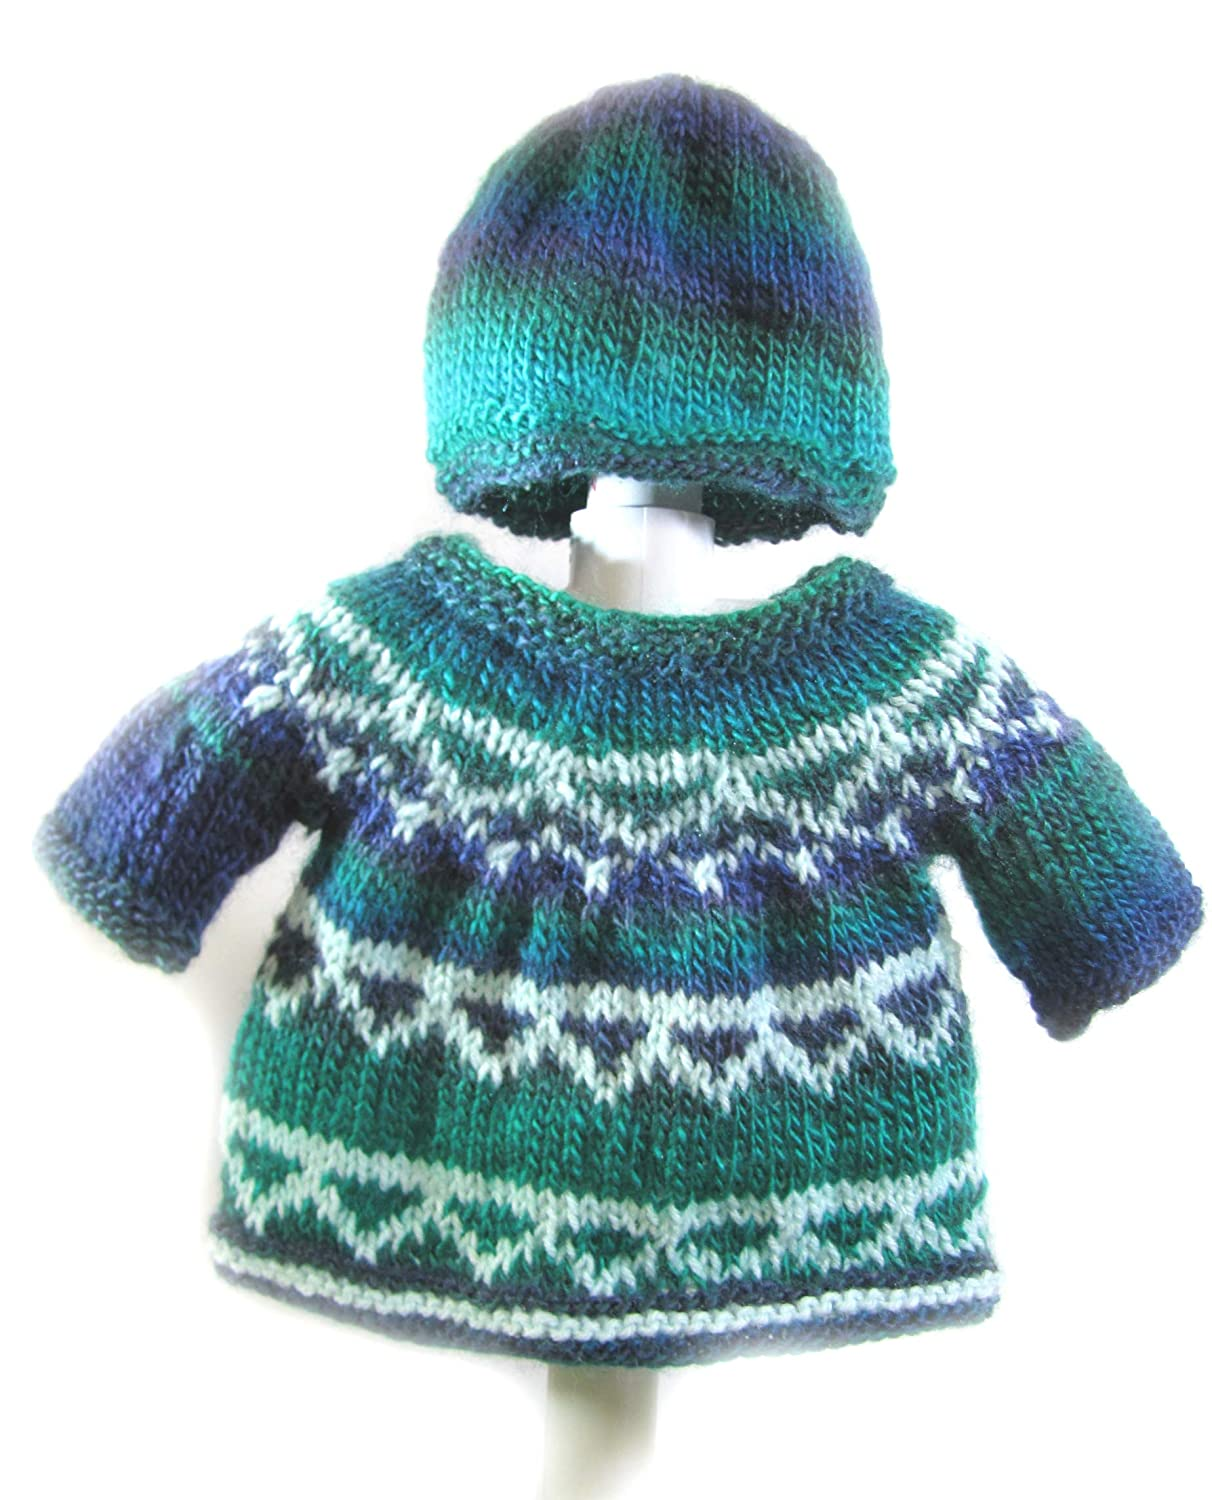 KSS Handmade Blue//Green//White Pullover Sweater with a Hat 6 Months